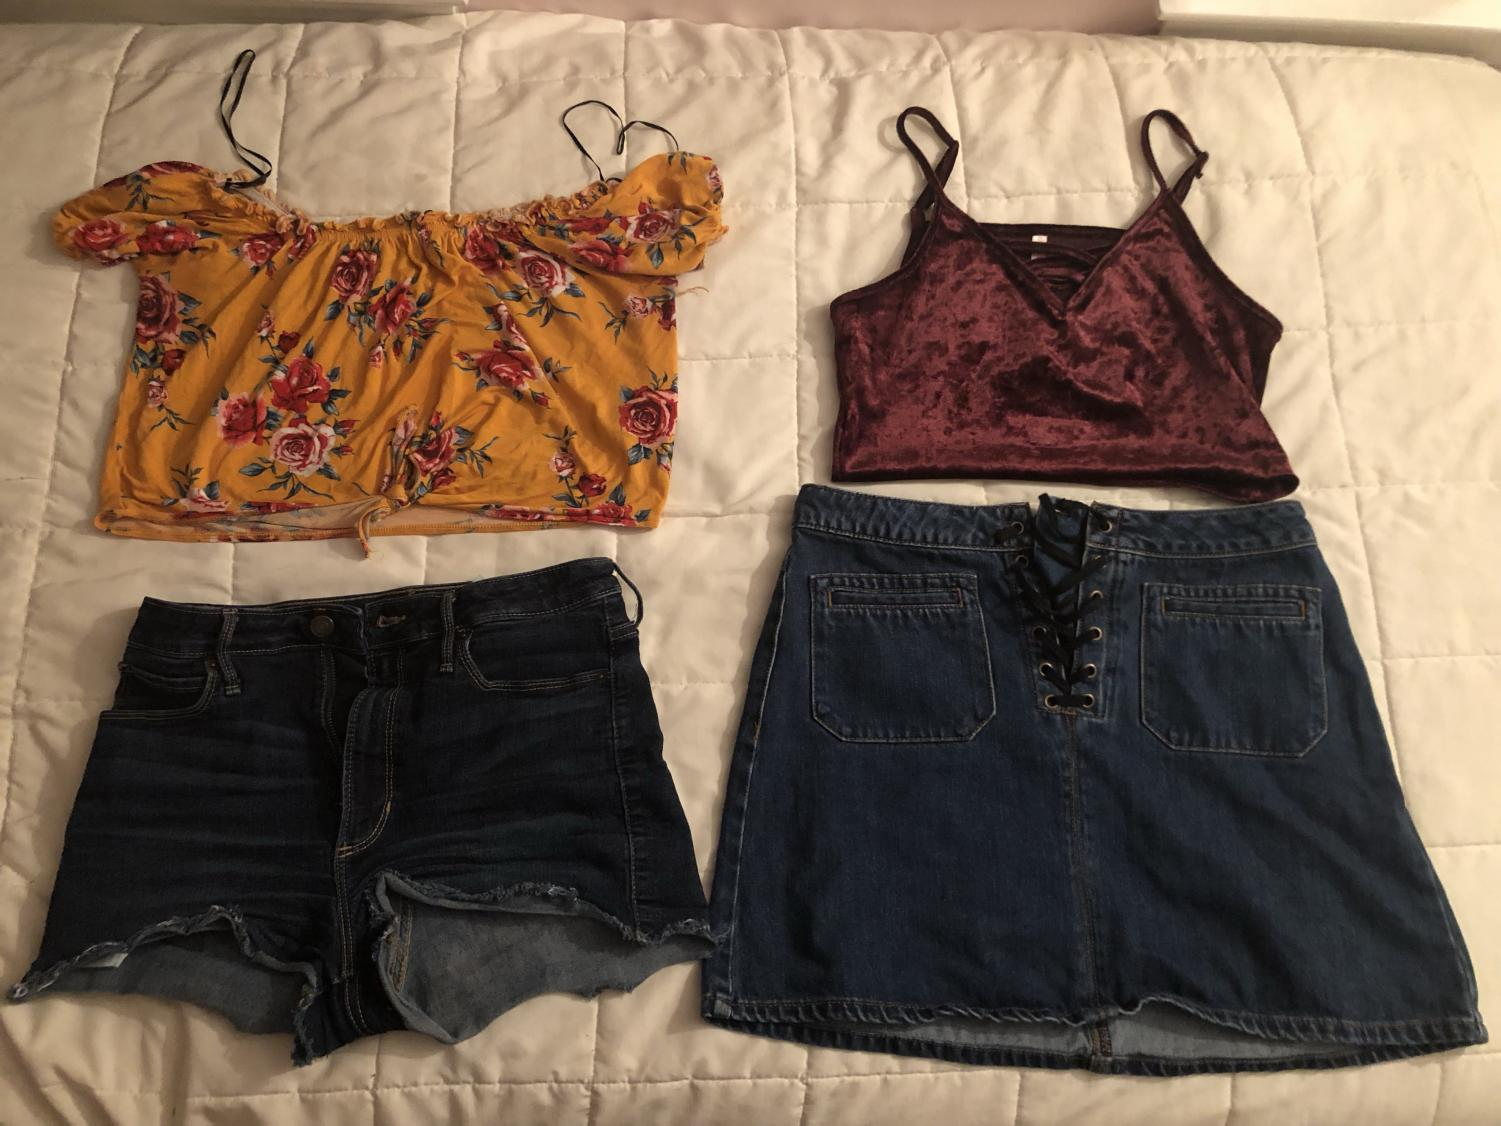 A fast fashion outfit (left) is displayed next to a thrifted, ecofriendly outfit (right)